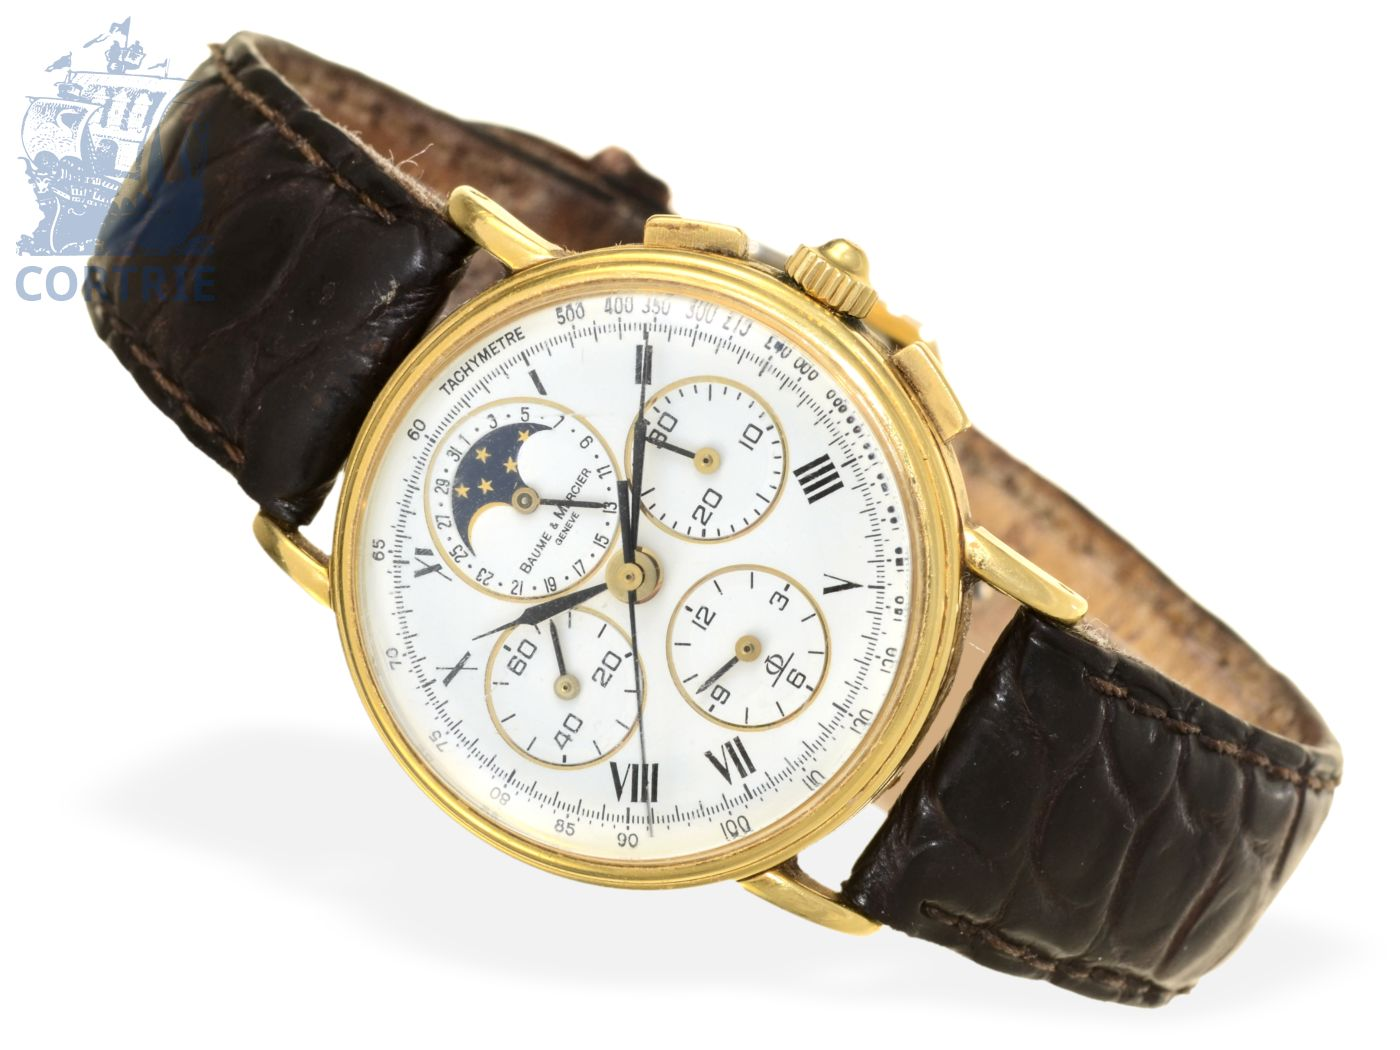 Wristwatch: very rare and vintage chronograph with calendar and moon, Baume & Mercier Ref. 86102, from the 80s-